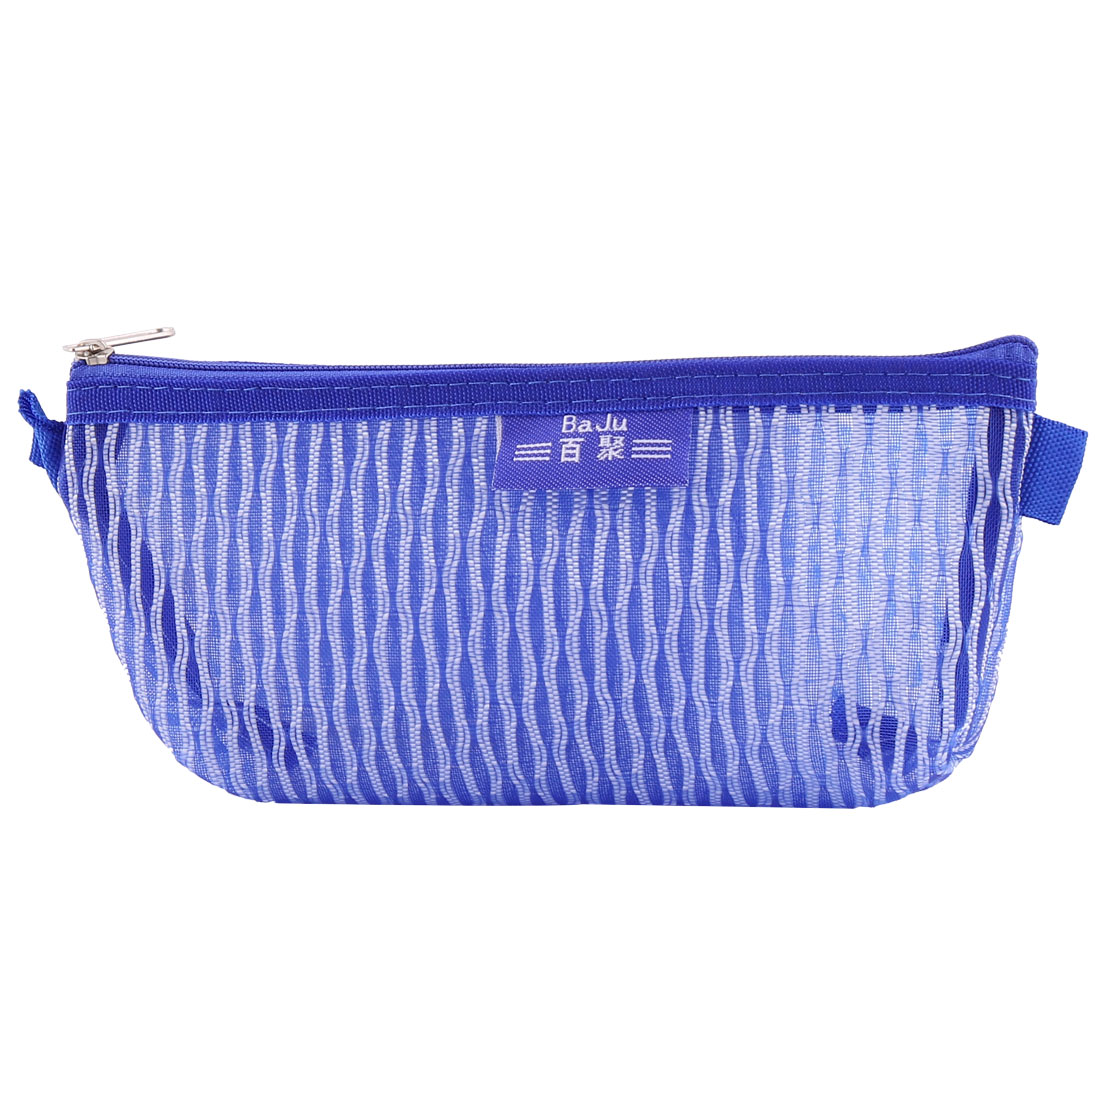 School Nylon Gridding Zippered Pen Pencil Bag Holder Pouch Blue